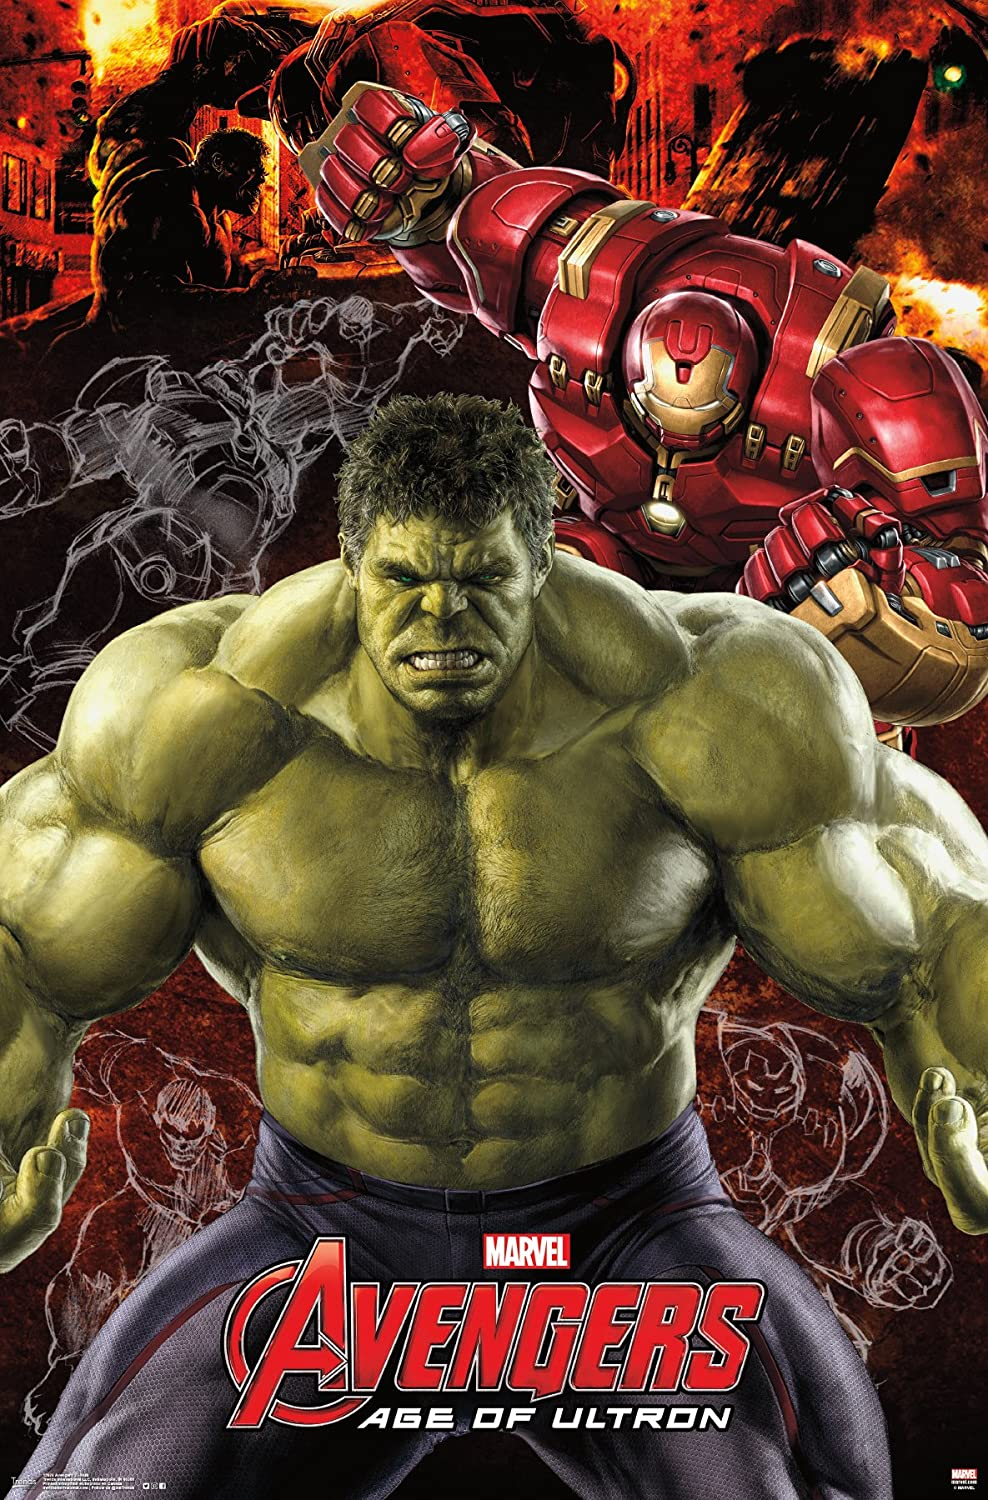 Hulk Vs Iron Man : Avengers